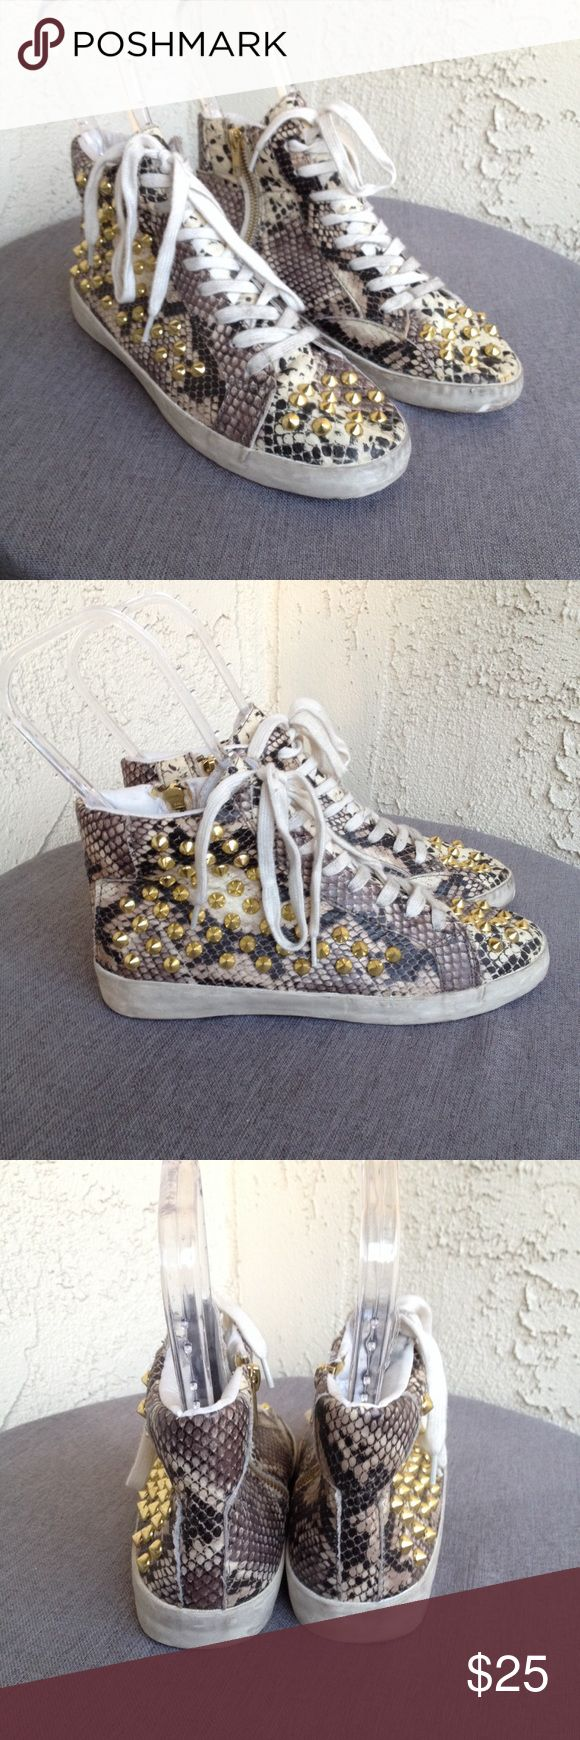 Steve Madden Gold Studded Snake Print Hi Top Shoes Steve Madden Women's Shoes Gold Studded Snake Print High Tops Zip Up Sneakers  Type: Shoes Style: Zip Up Sides / Lace Up / High Tops  Brand: Steve Madden  Size: 7.5  Heel Height: Flat   Material: Man Made Materials  Color: Brown / Gray / Cream / Gold  Condition: Great, Preowned Condition Country of Manufacturer: China  Stock Number: 0012 Steve Madden Shoes Sneakers